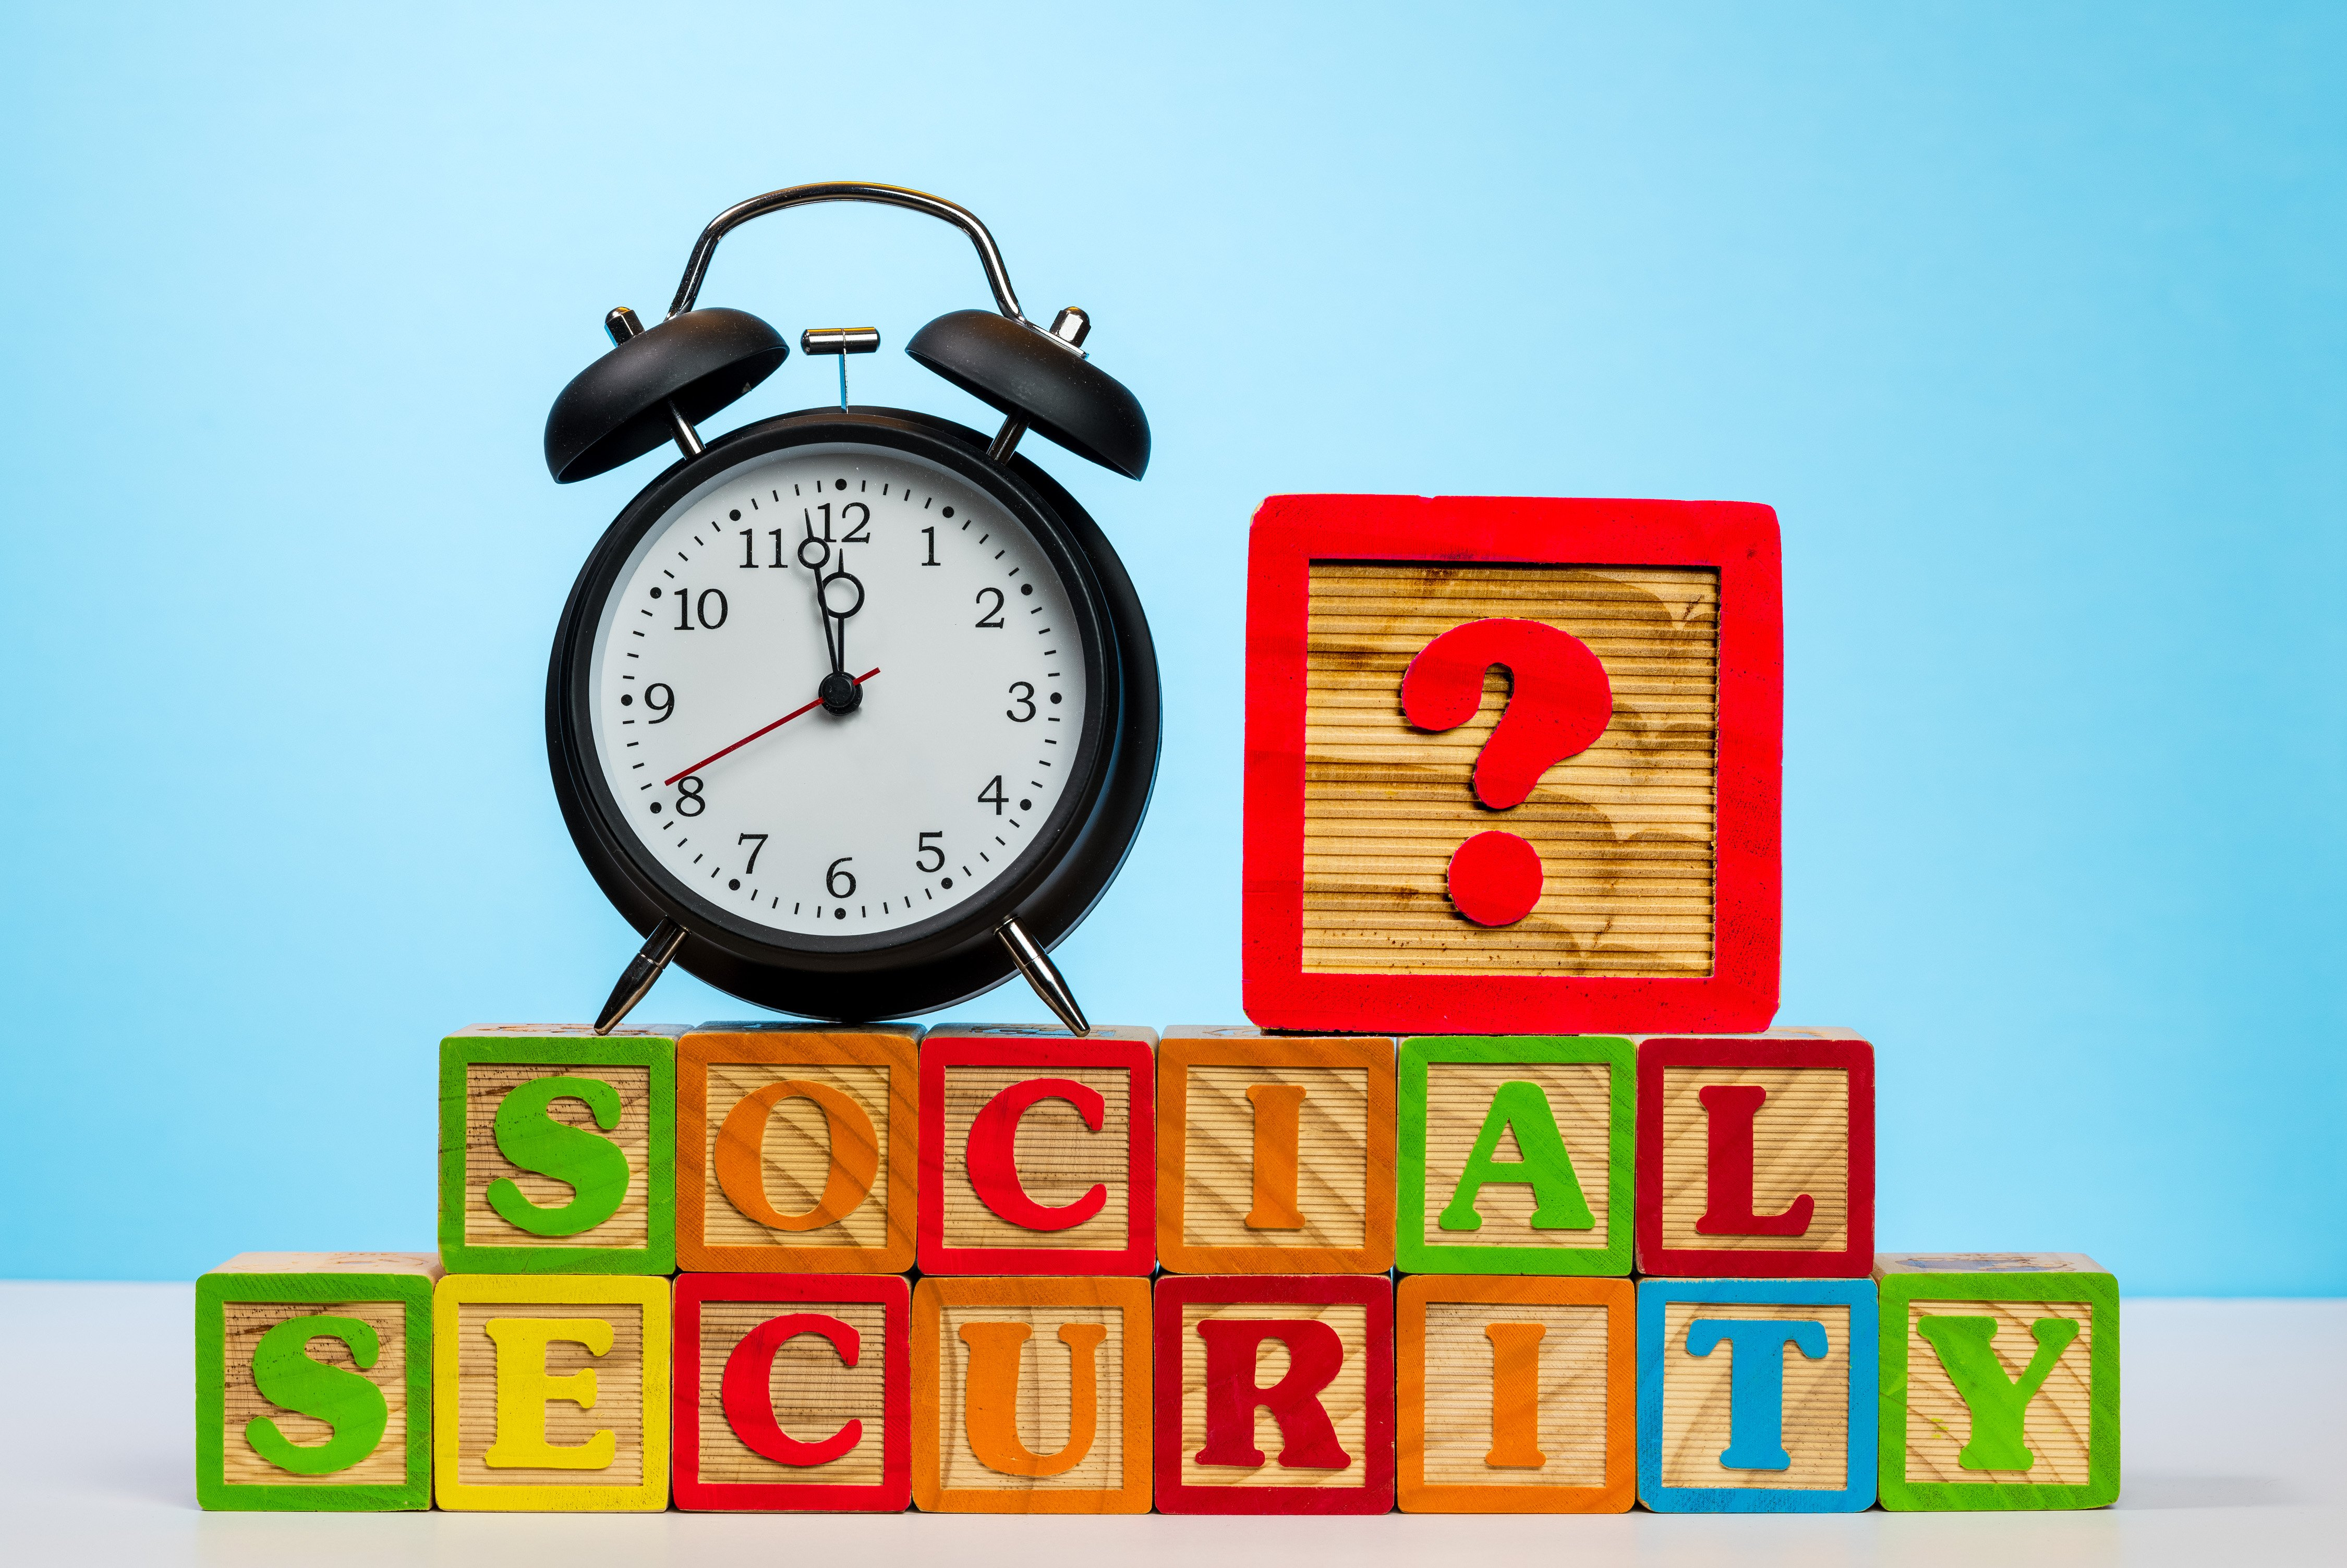 Pictured is the concept of running out of Social Security. SHUTTERSTOCK/Steve Heap